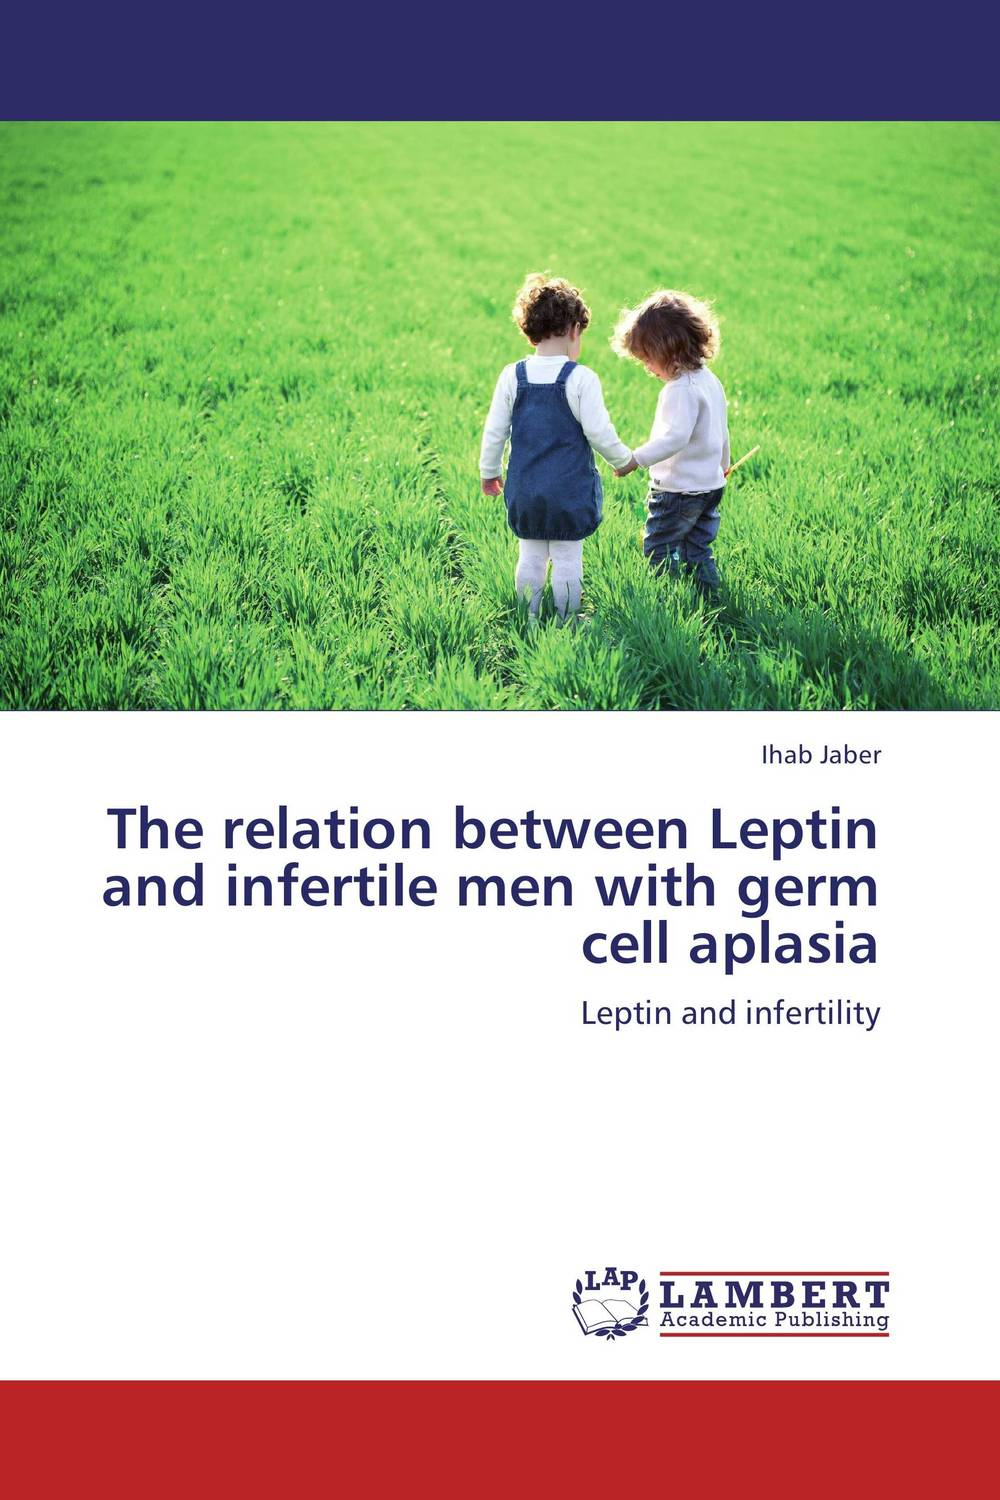 The relation between Leptin and infertile men with germ cell aplasia umesh singh sushil kumar and rajib deb monograph on bovine leptin gene